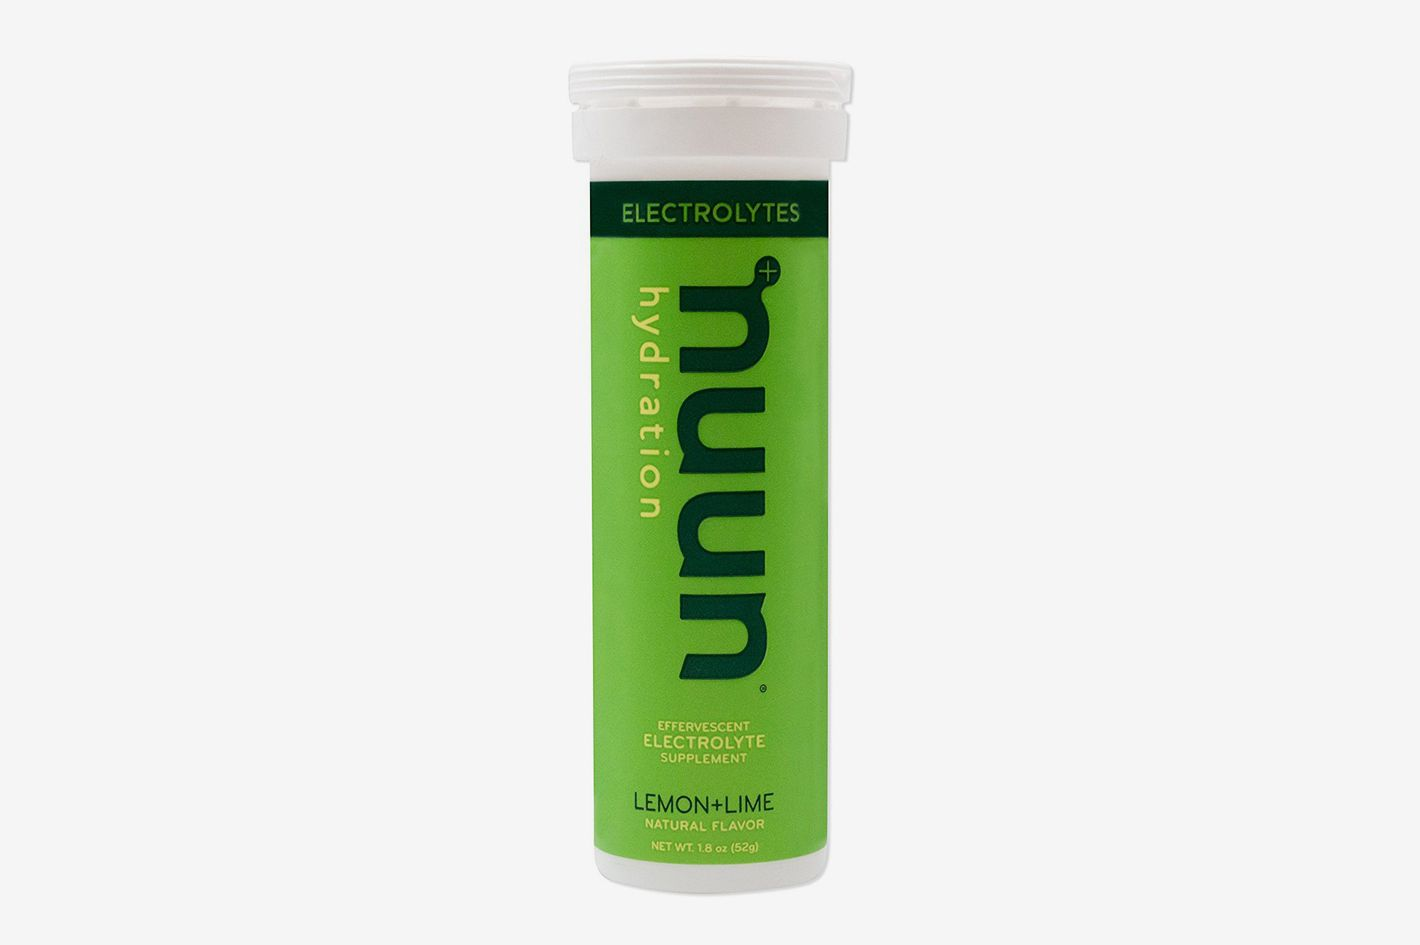 Nuun Hydration: Electrolyte Drink Tablets, Lemon Lime, Box of 8 Tubes (80 servings)